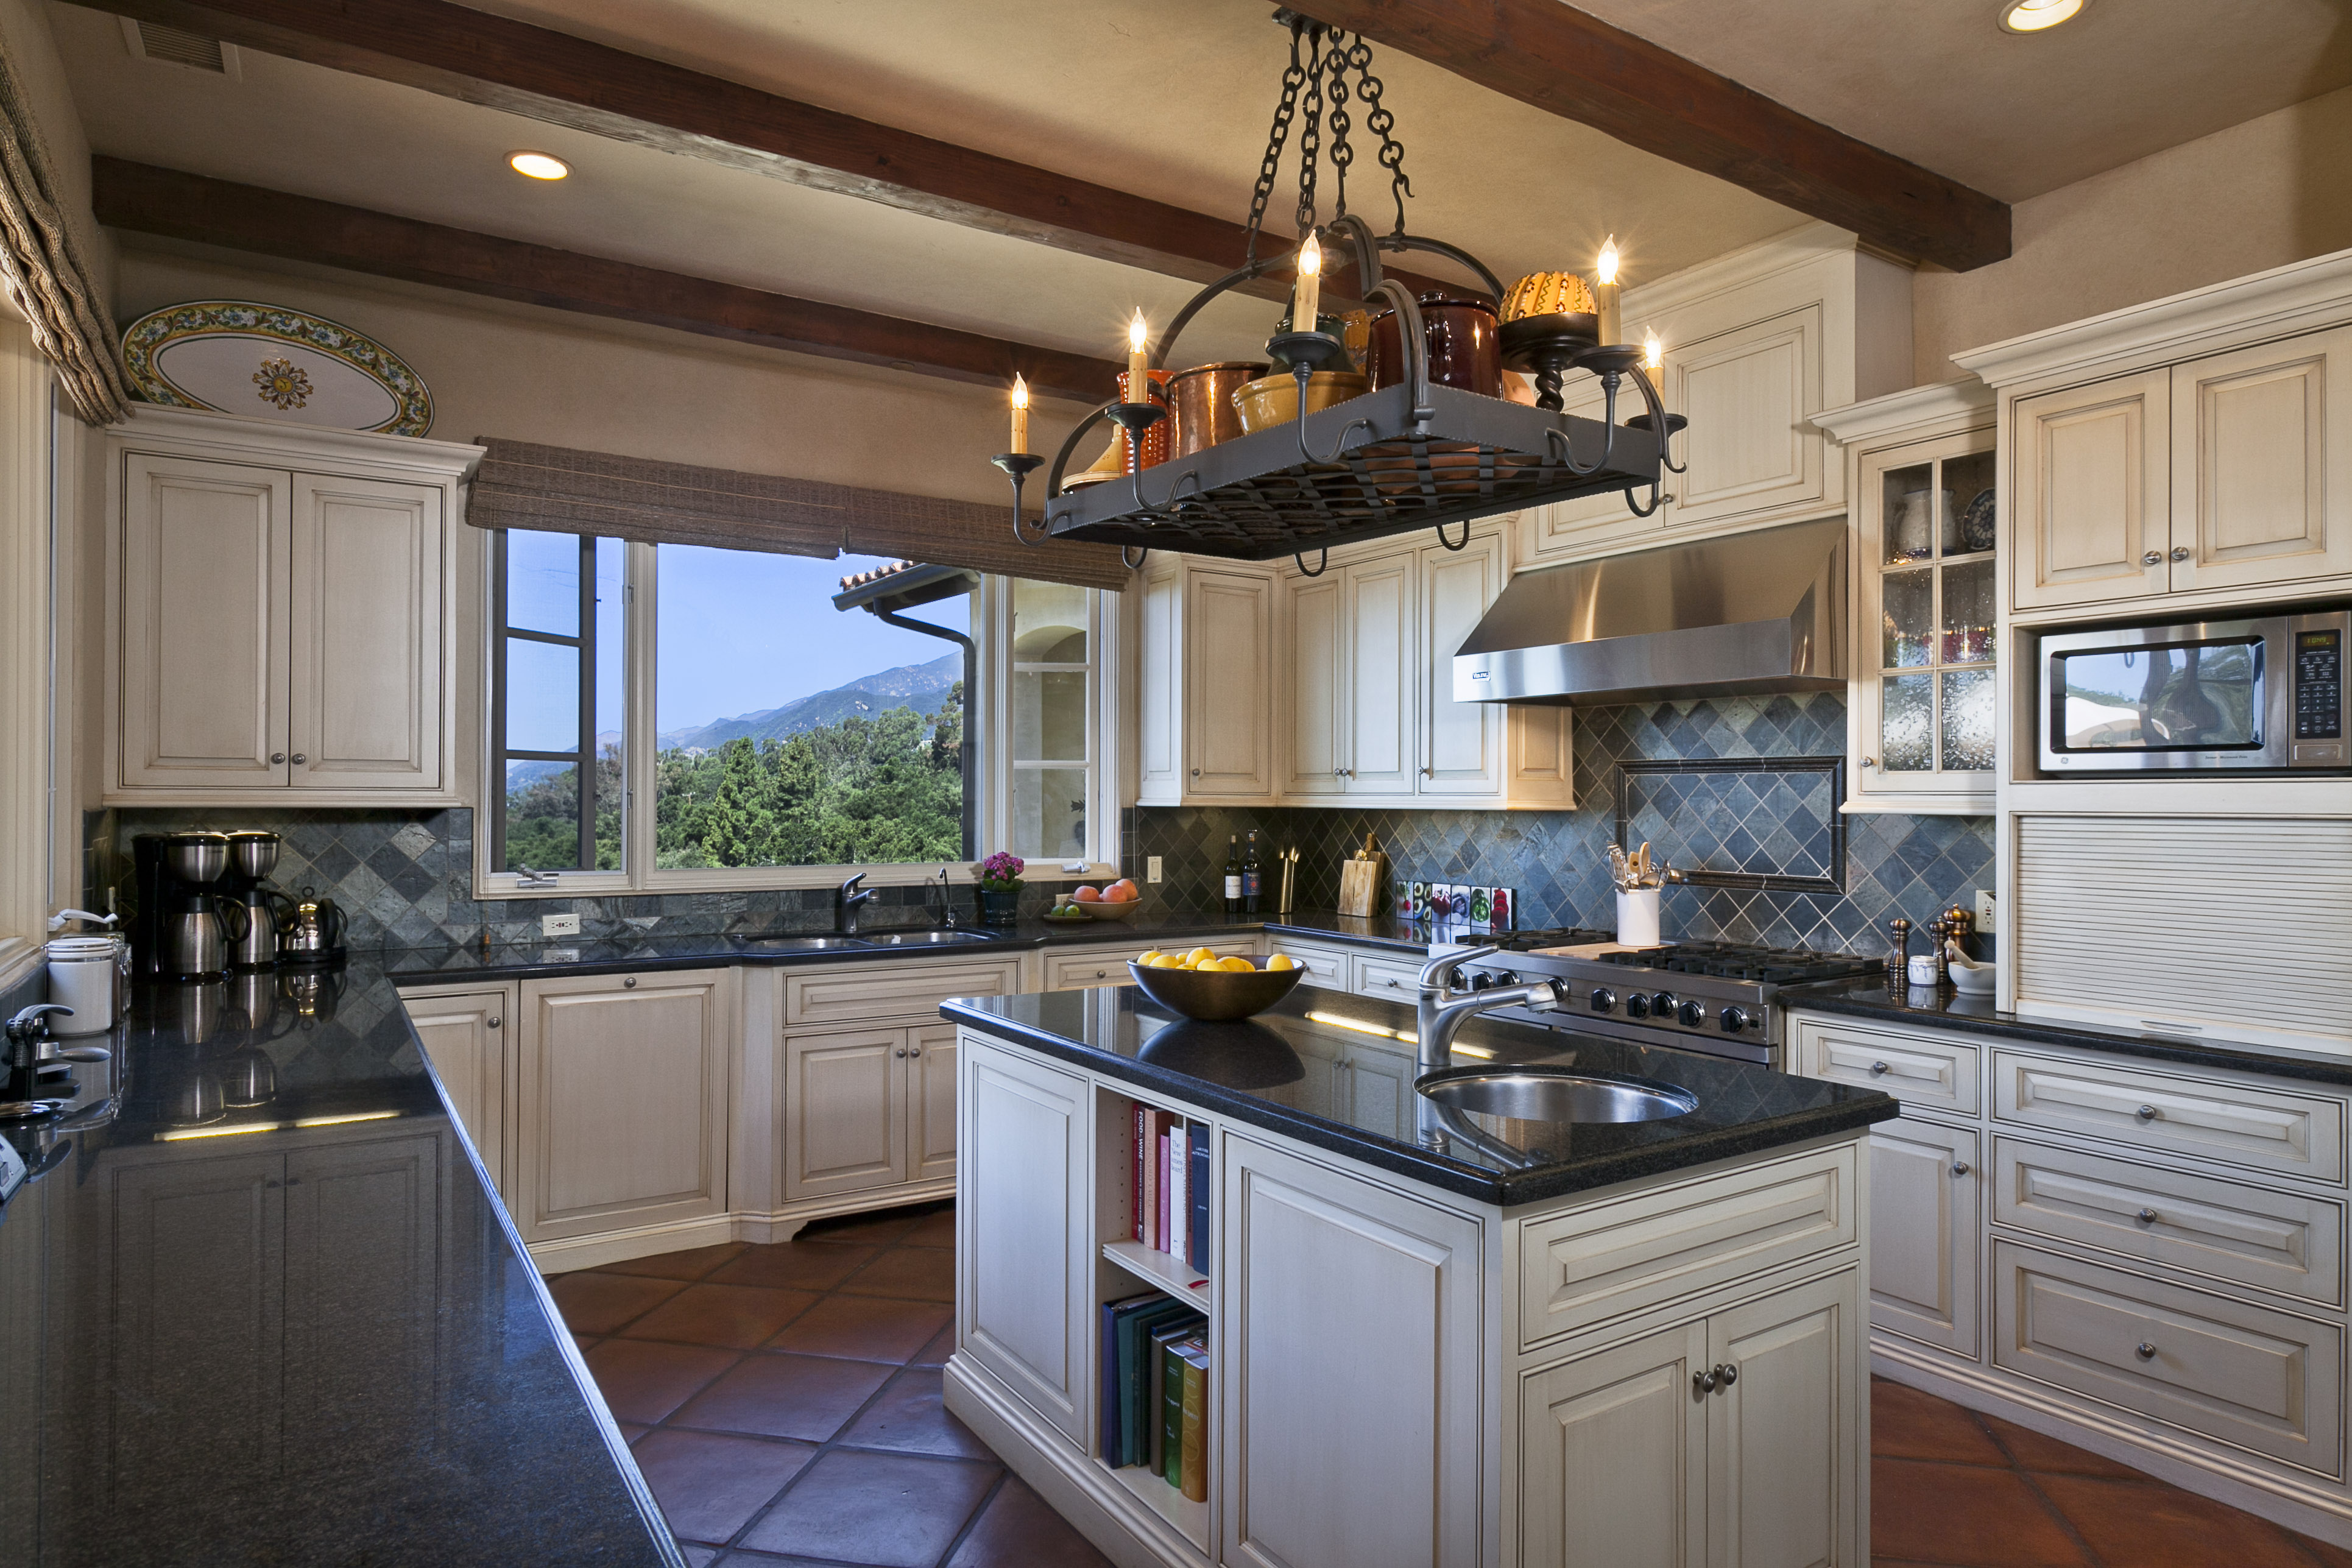 big lots kitchen appliances professional oven april | 2012 montecito real estate